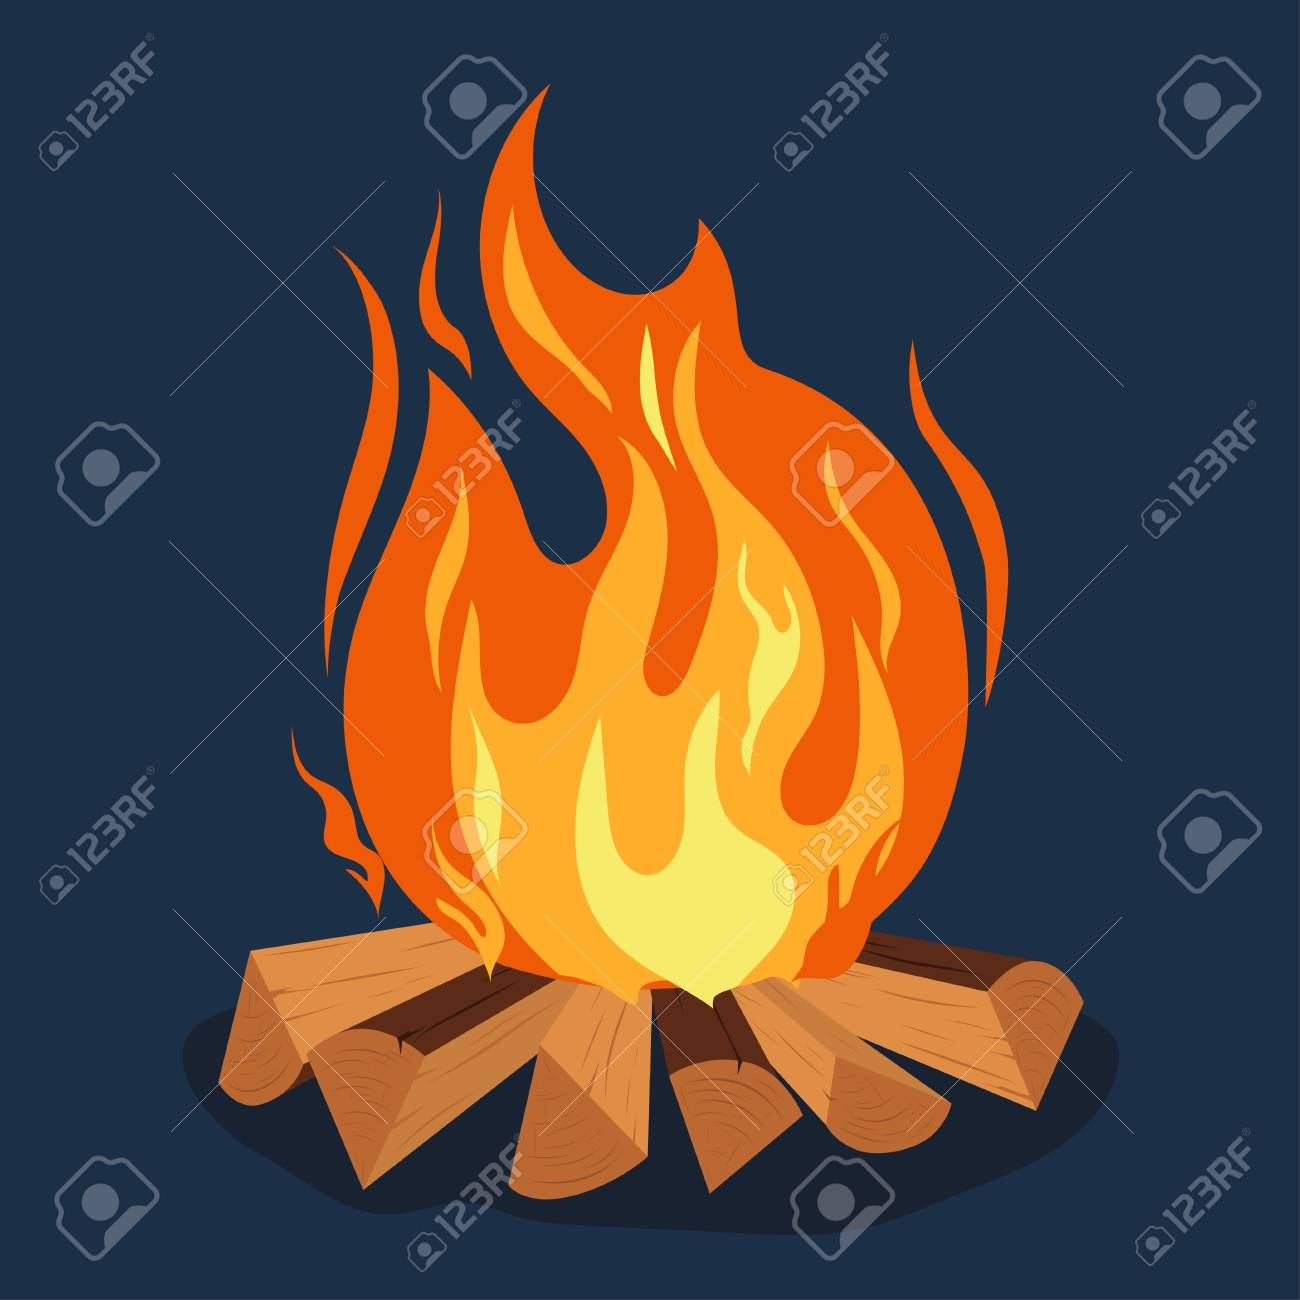 Bonfire Cartoon Style Illustration Camping Burning Woodpile